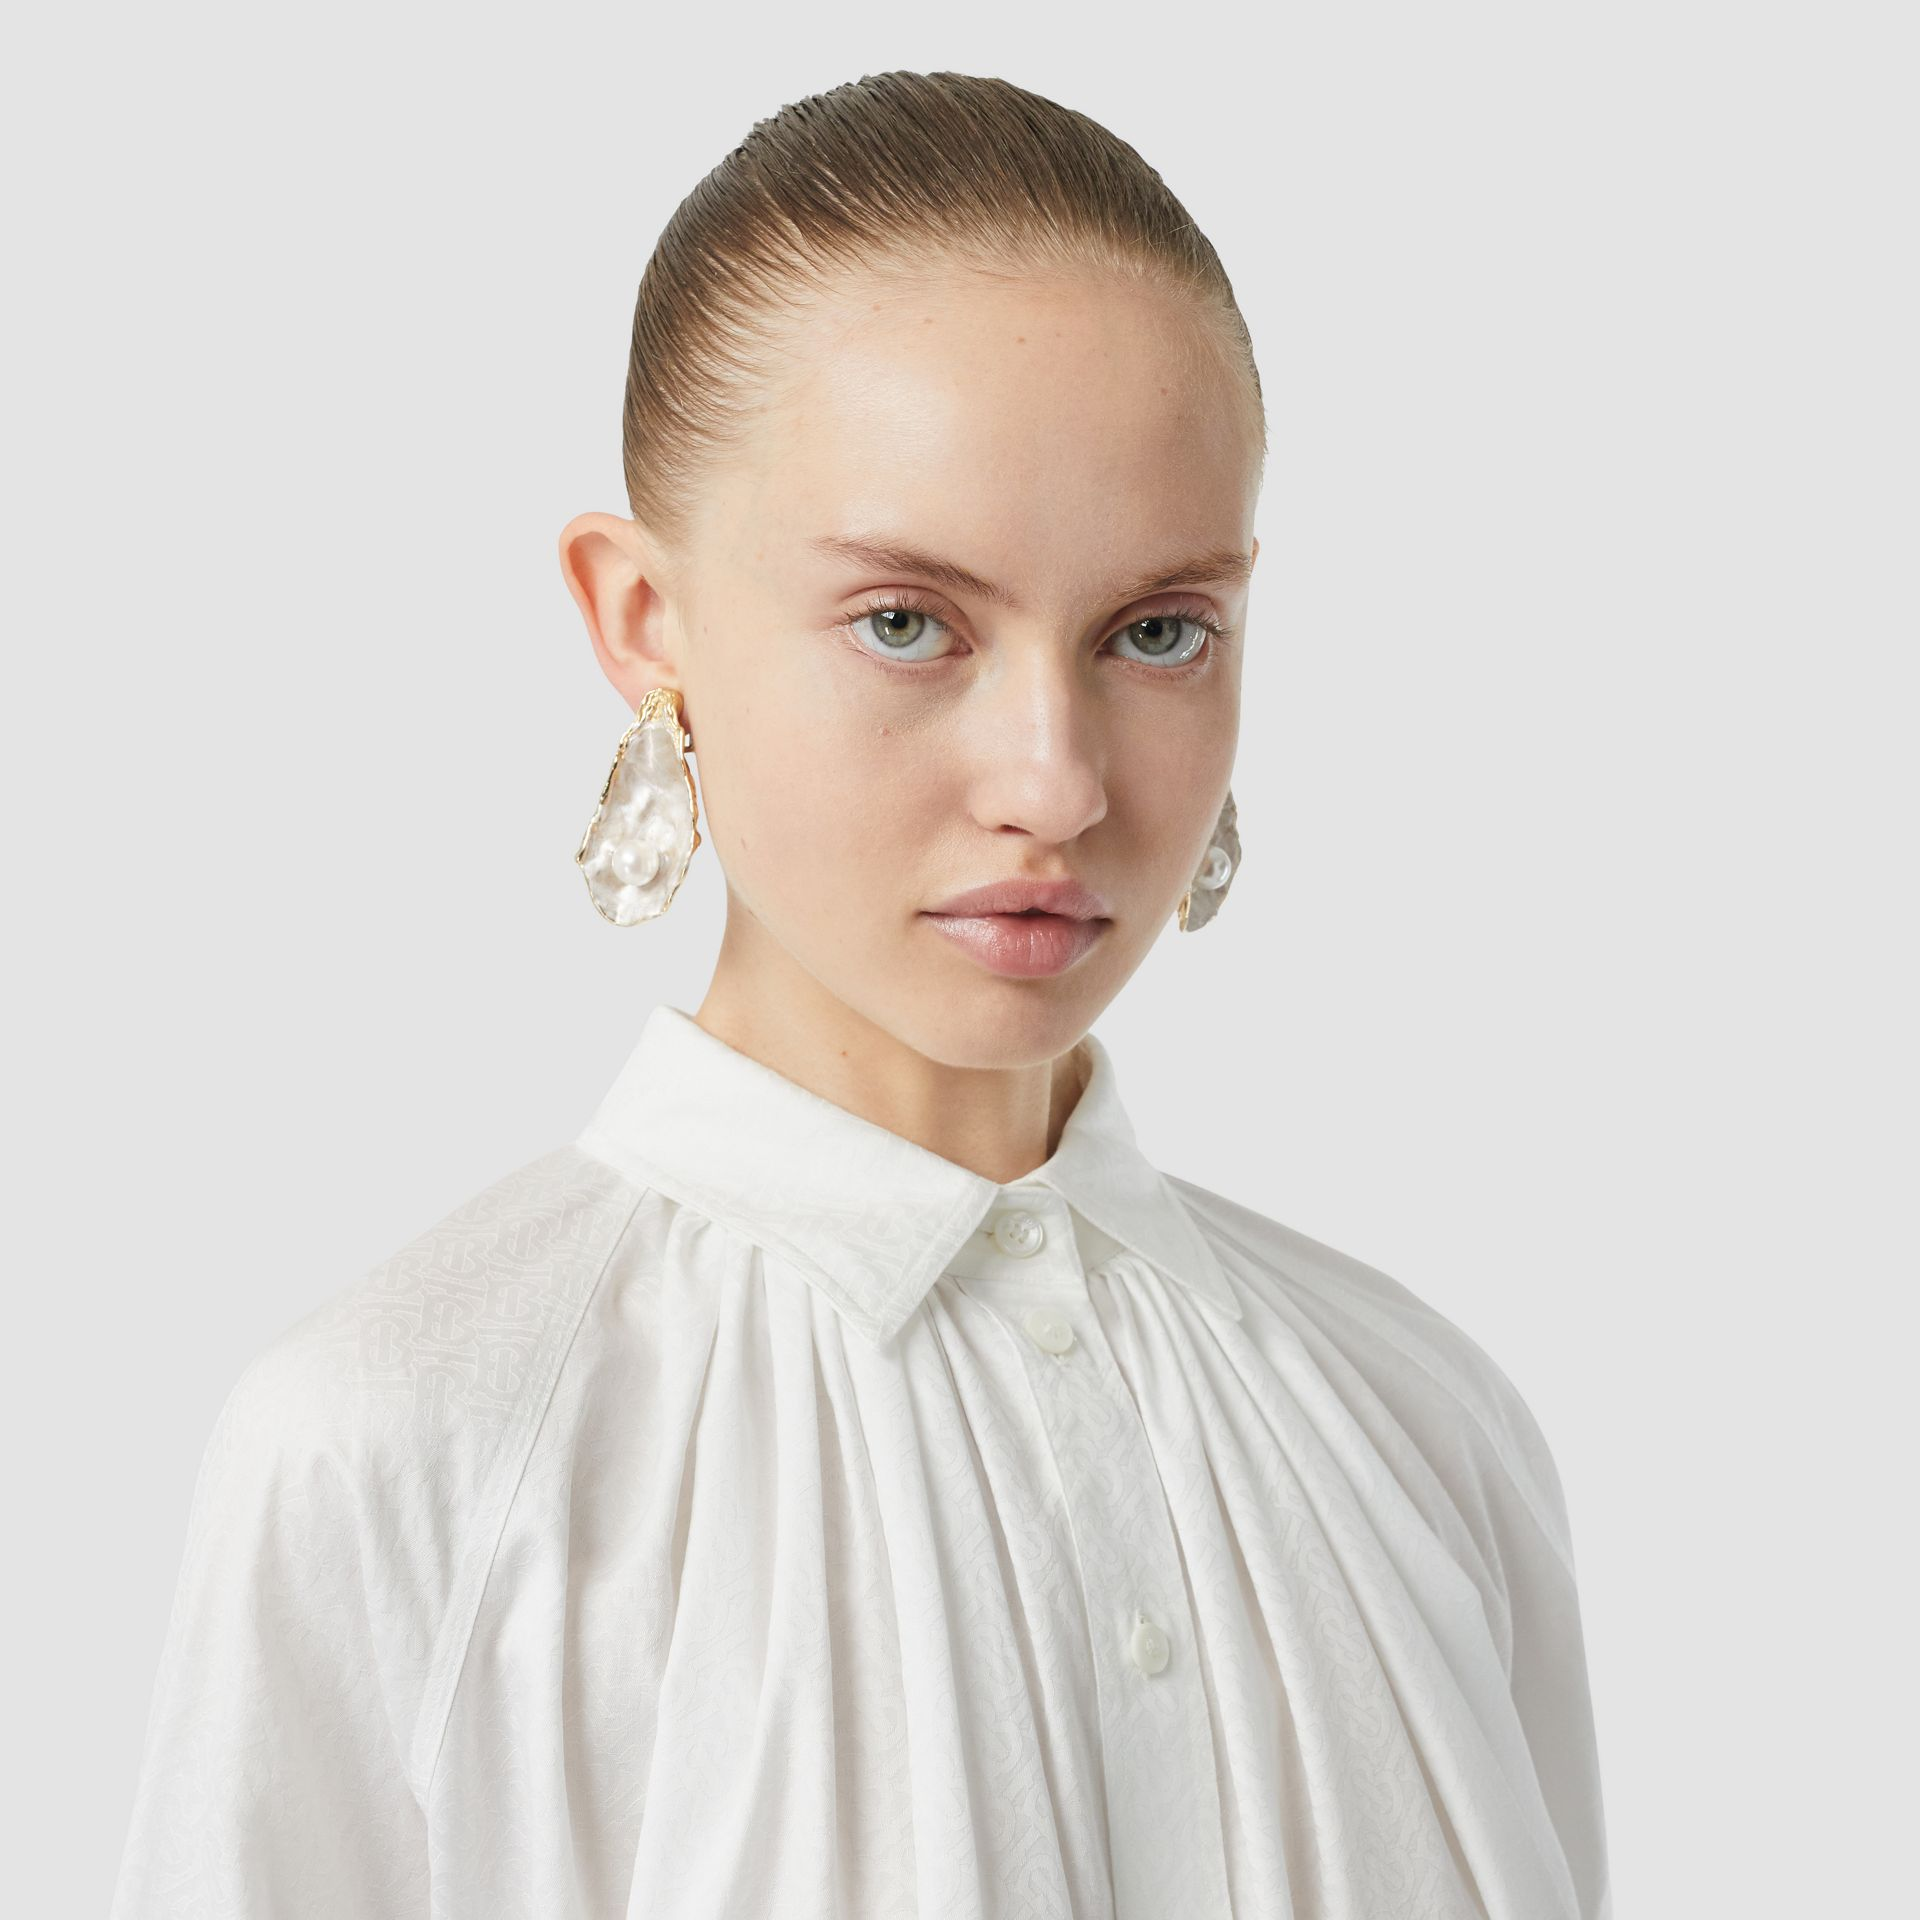 Monogram Cotton Jacquard Oversized Shirt in Optic White - Women | Burberry - gallery image 1